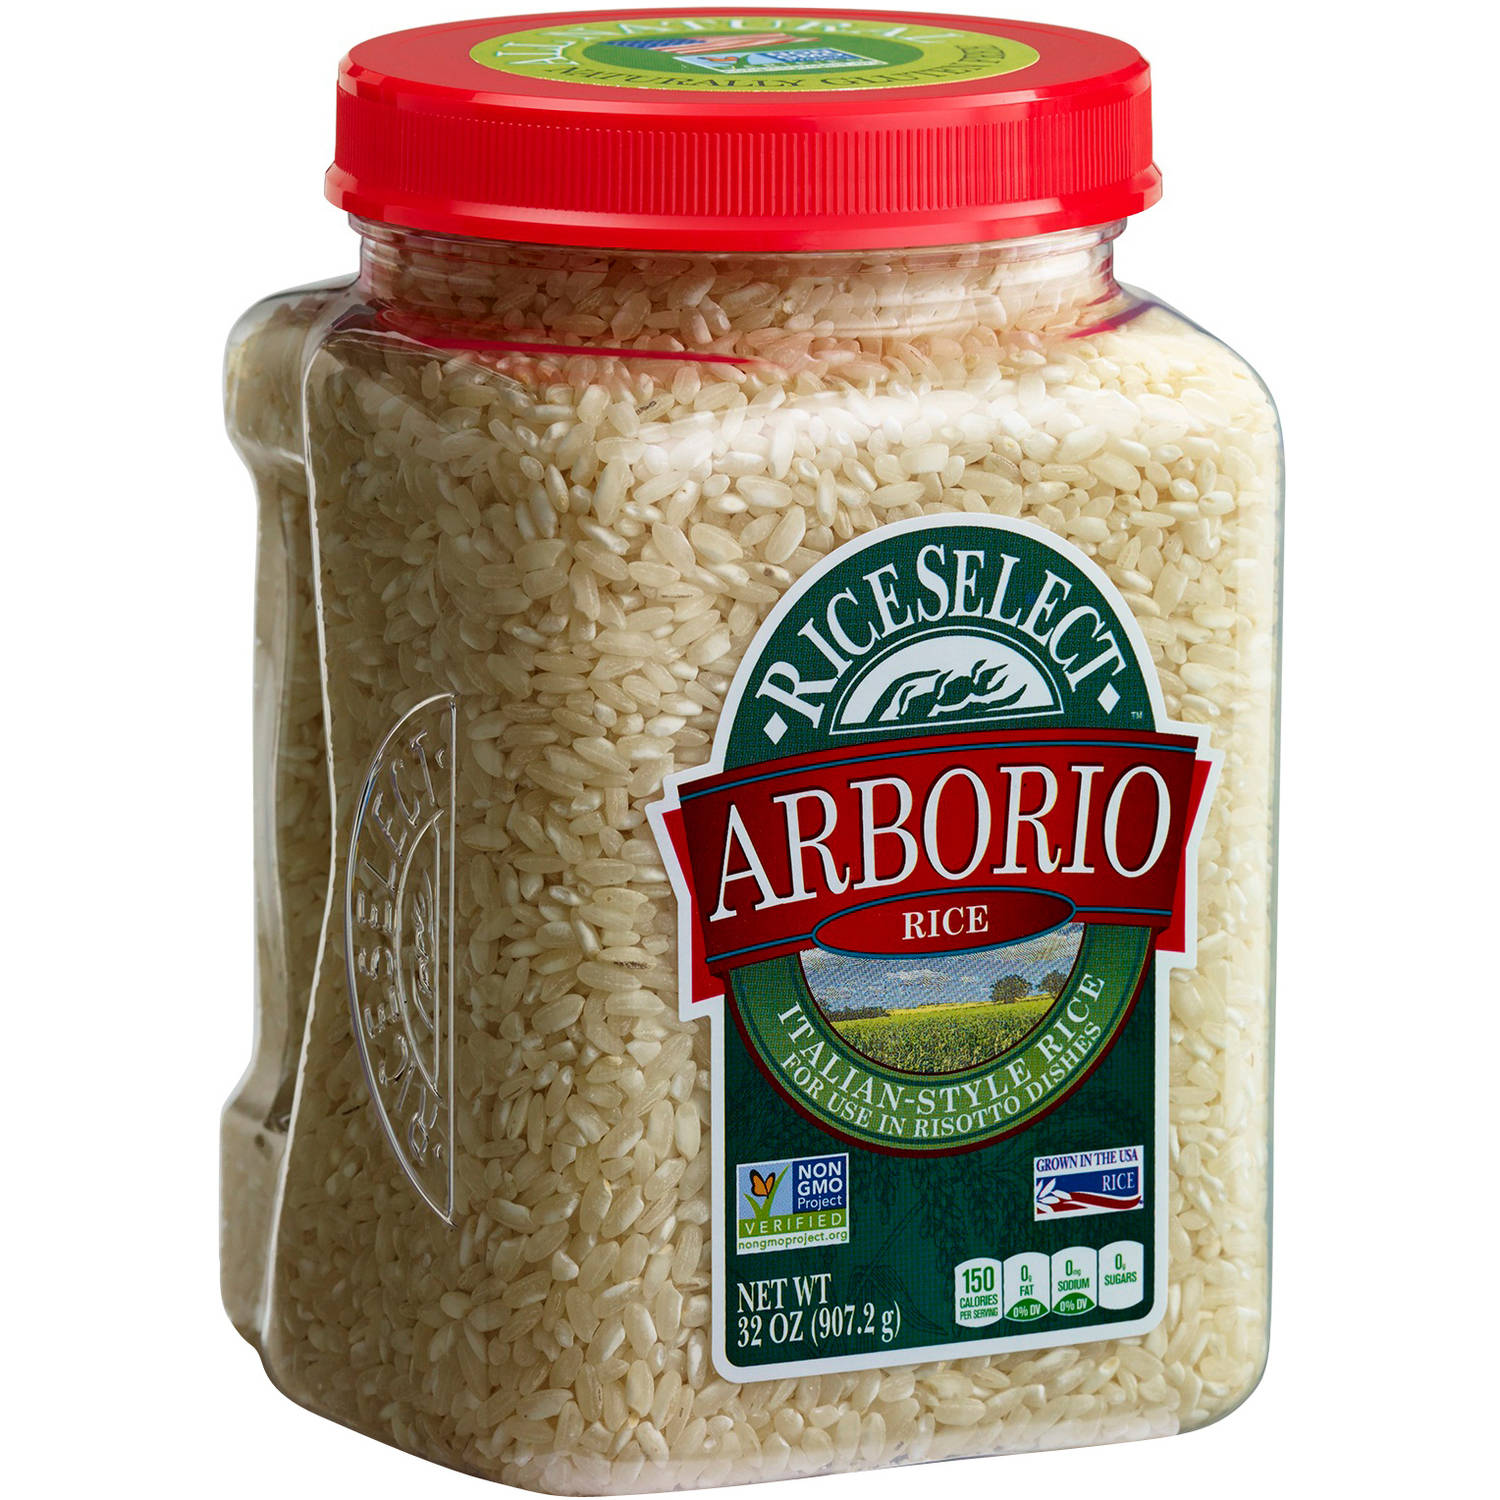 Ricesele ct Risotto Rice, 36 oz